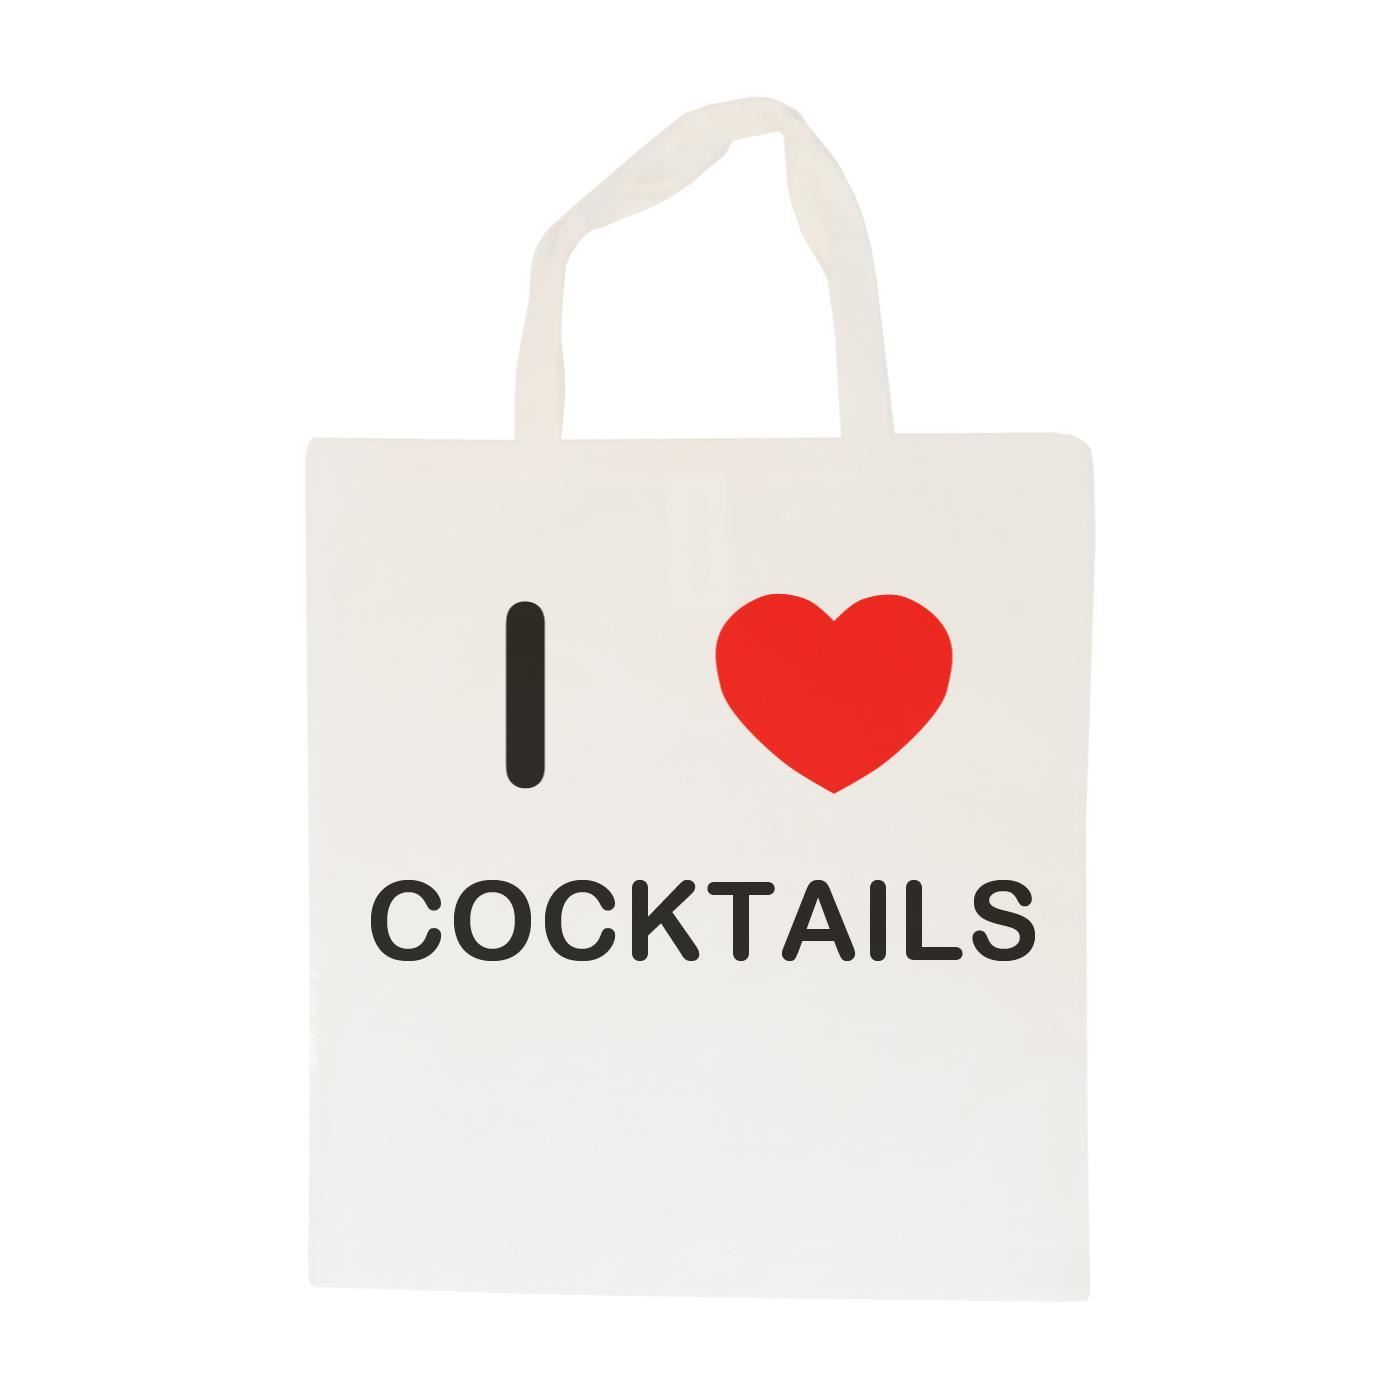 I Love Cocktails - Cotton Bag | Size choice Tote, Shopper or Sling